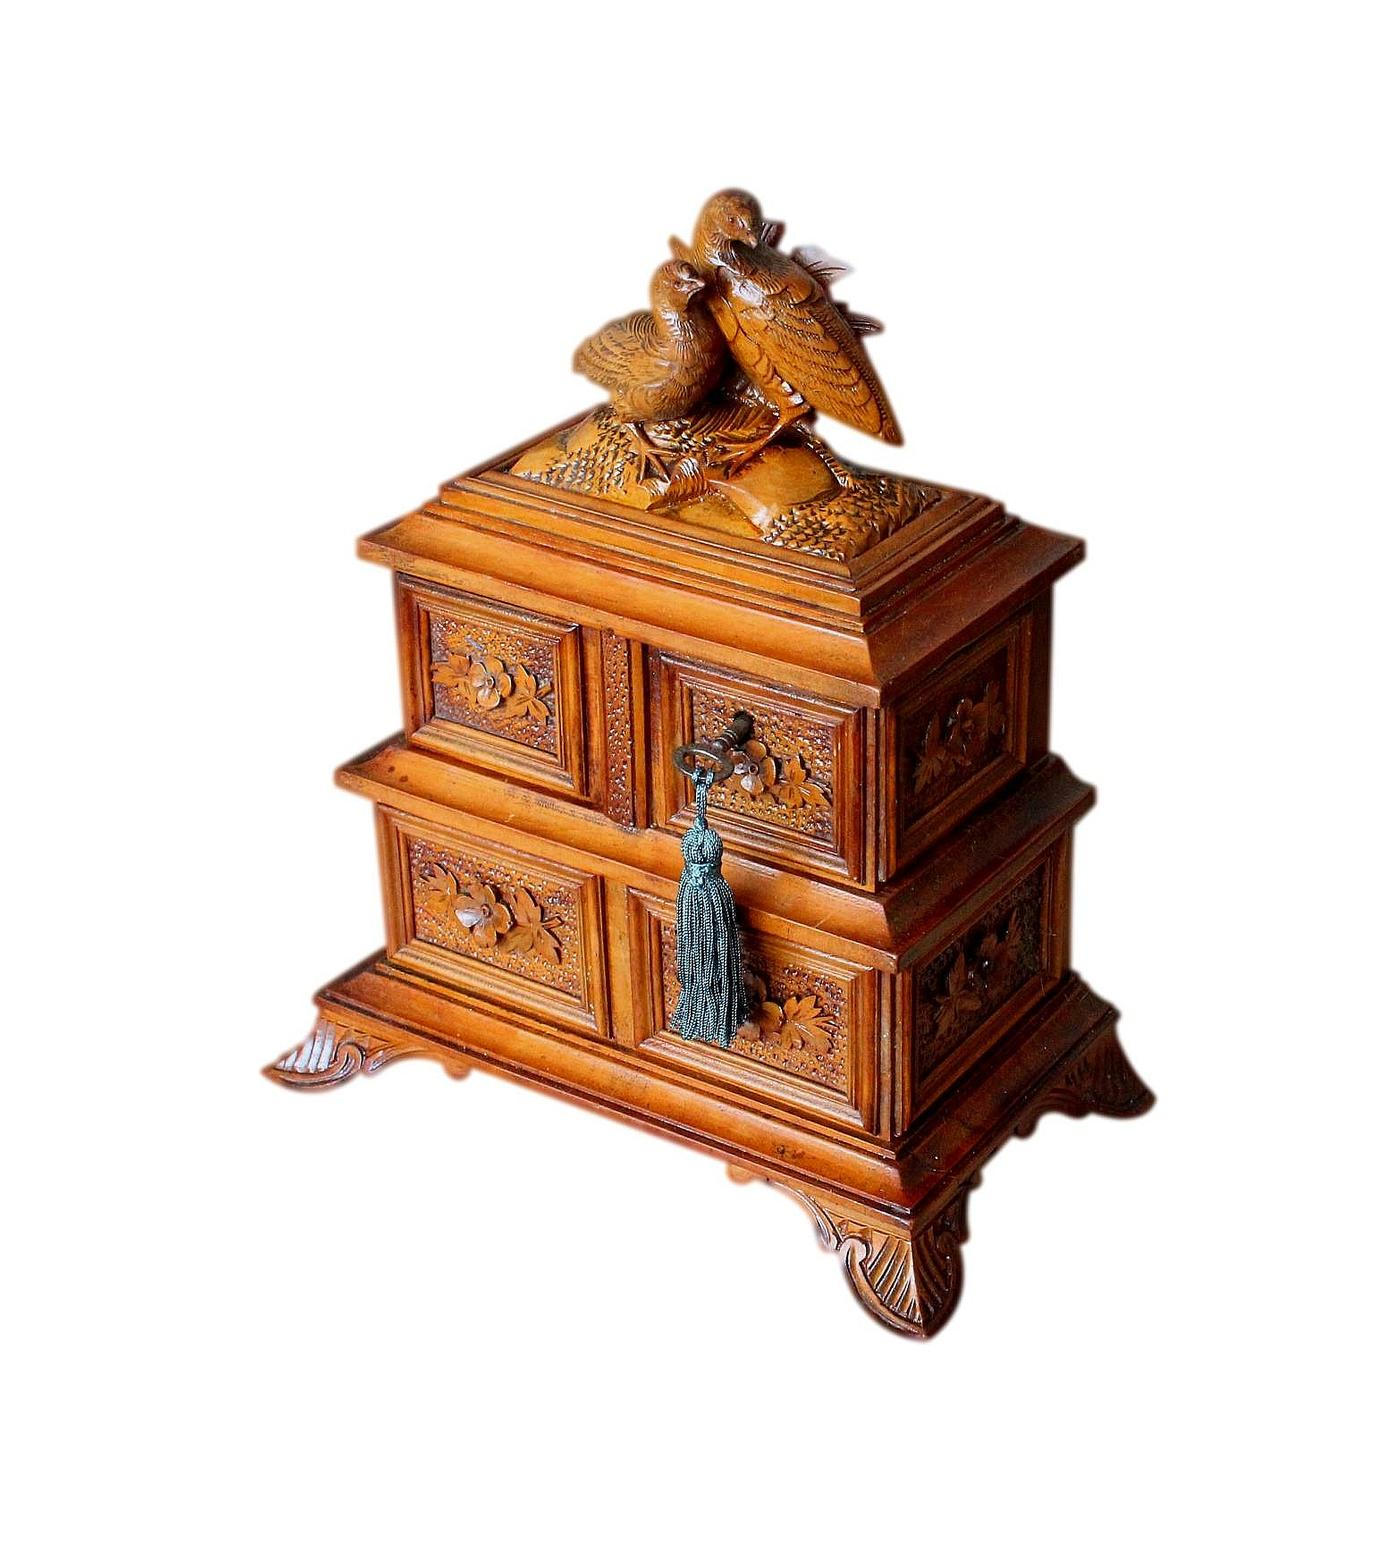 Beautifully Carved Refurbished Antique Black Forest Jewellery Box